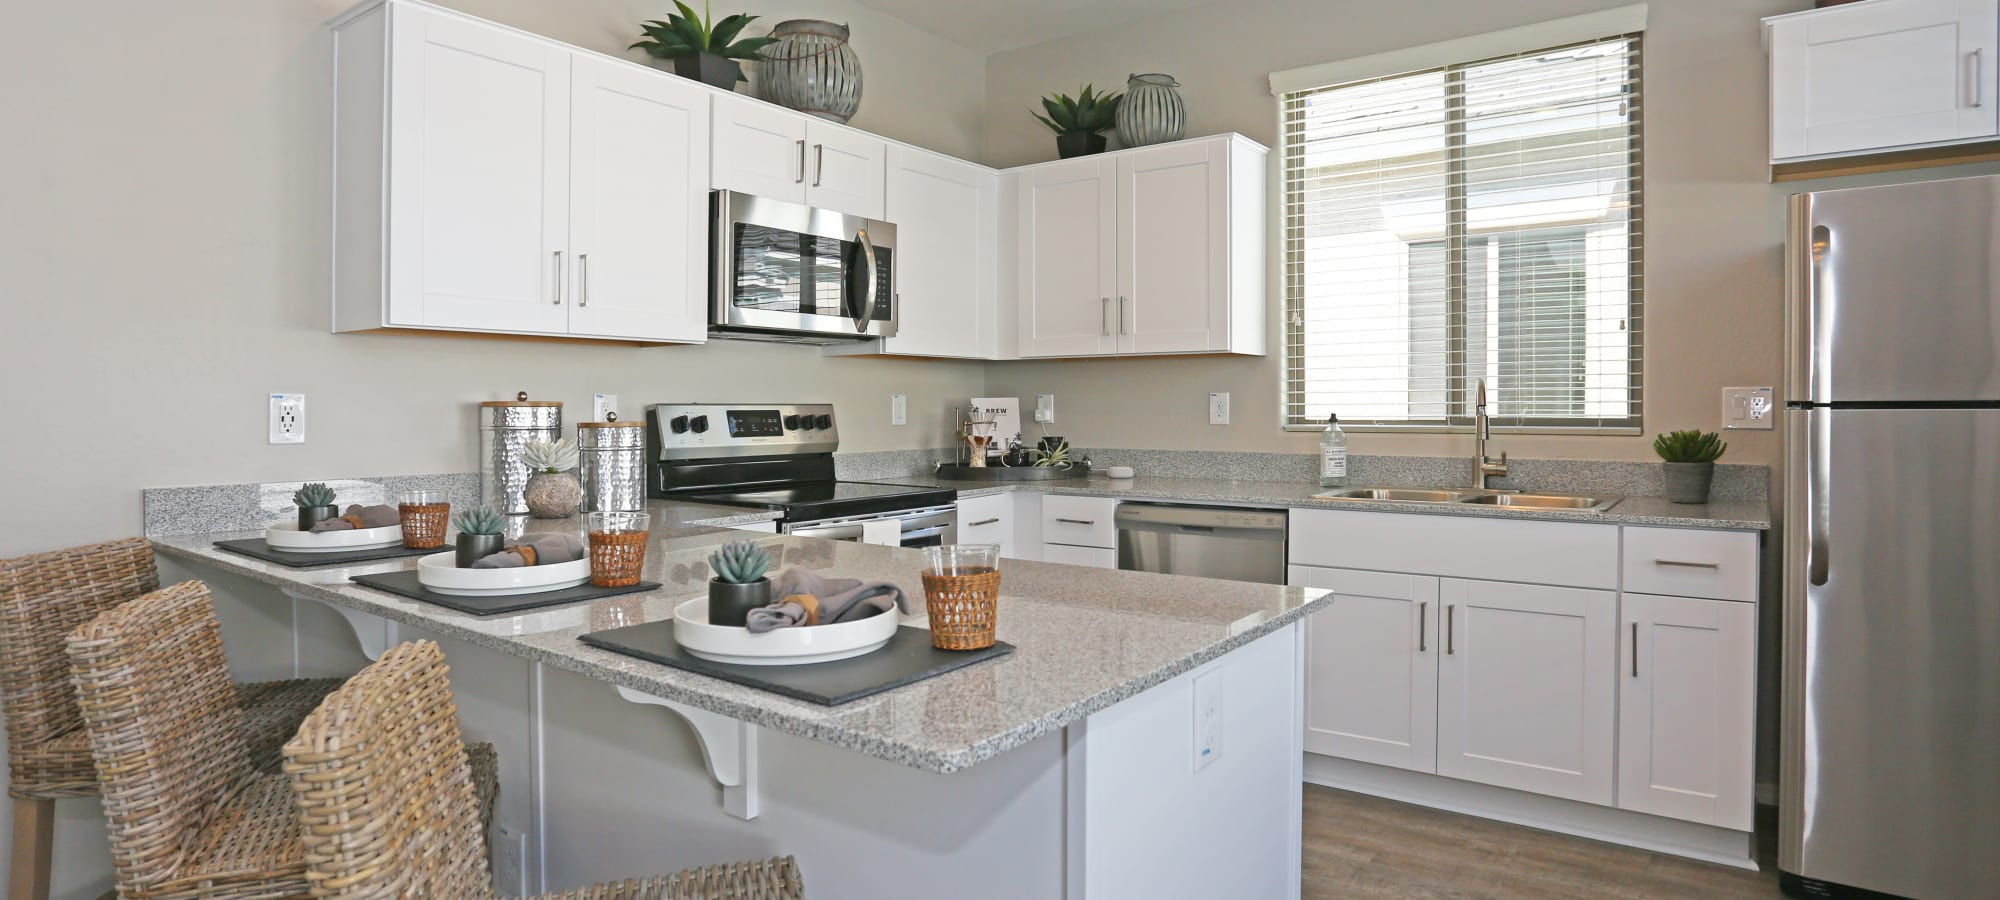 Our apartments in Peoria, Arizona showcase a luxury kitchen